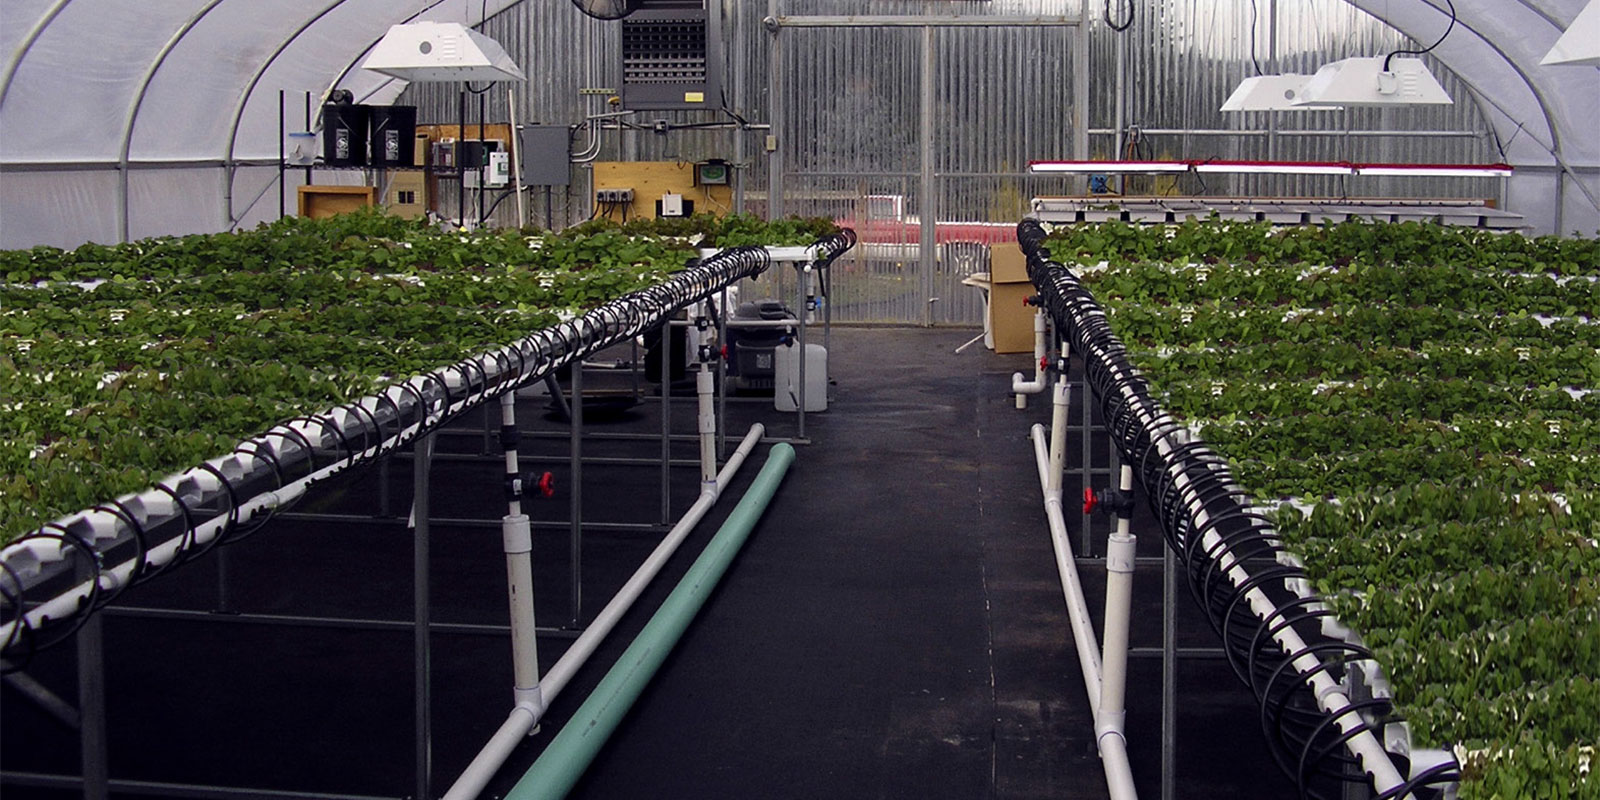 Hydroponic & Aquaponic Growing